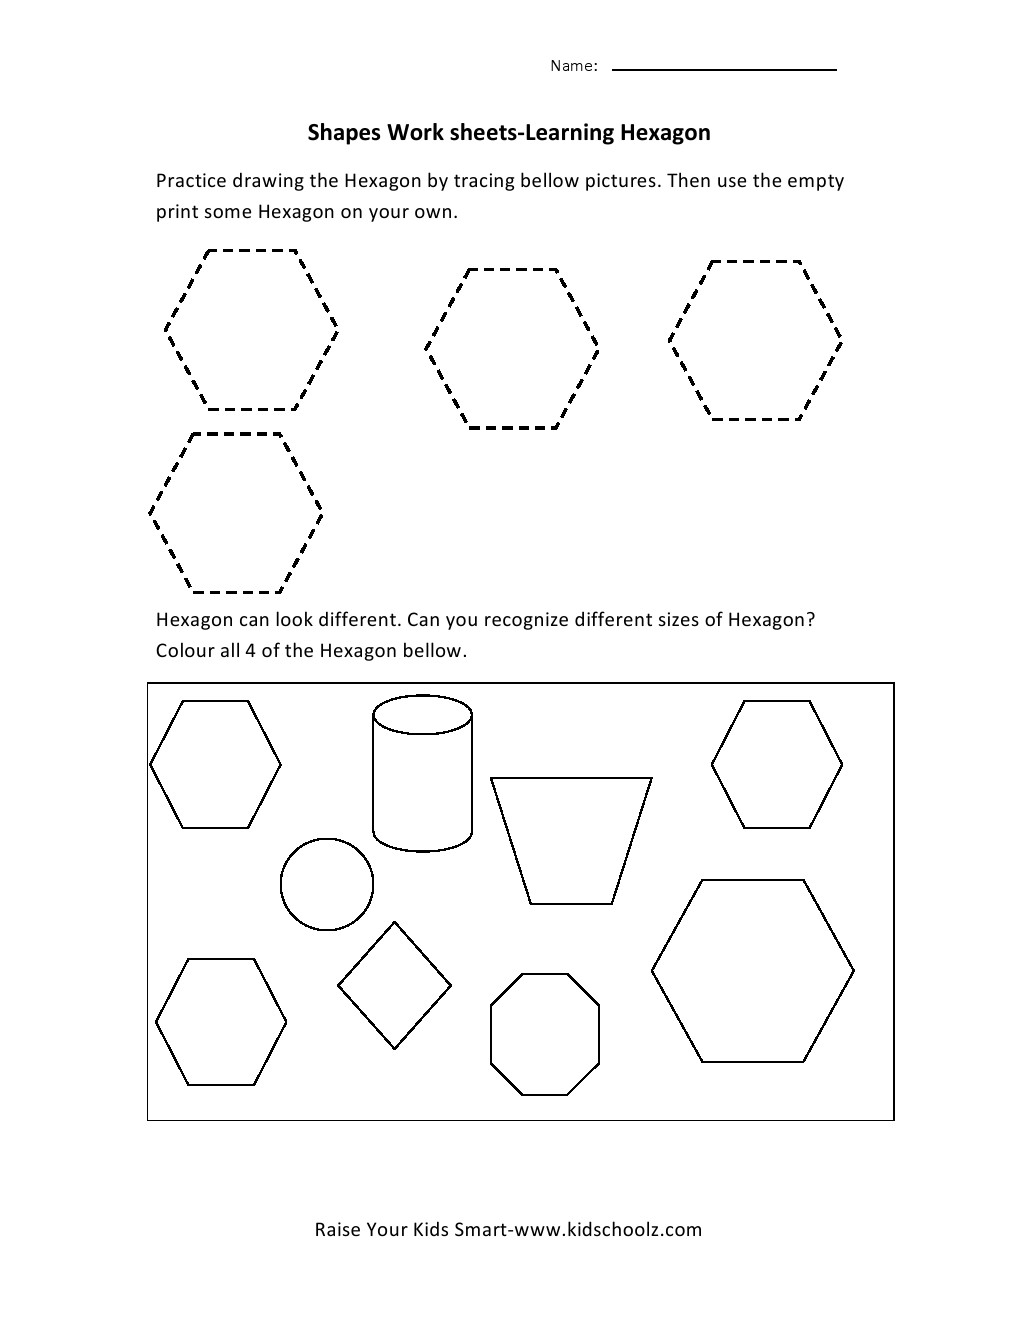 Printables Hexagon Worksheets learning shapes worksheets hexagon hexagon